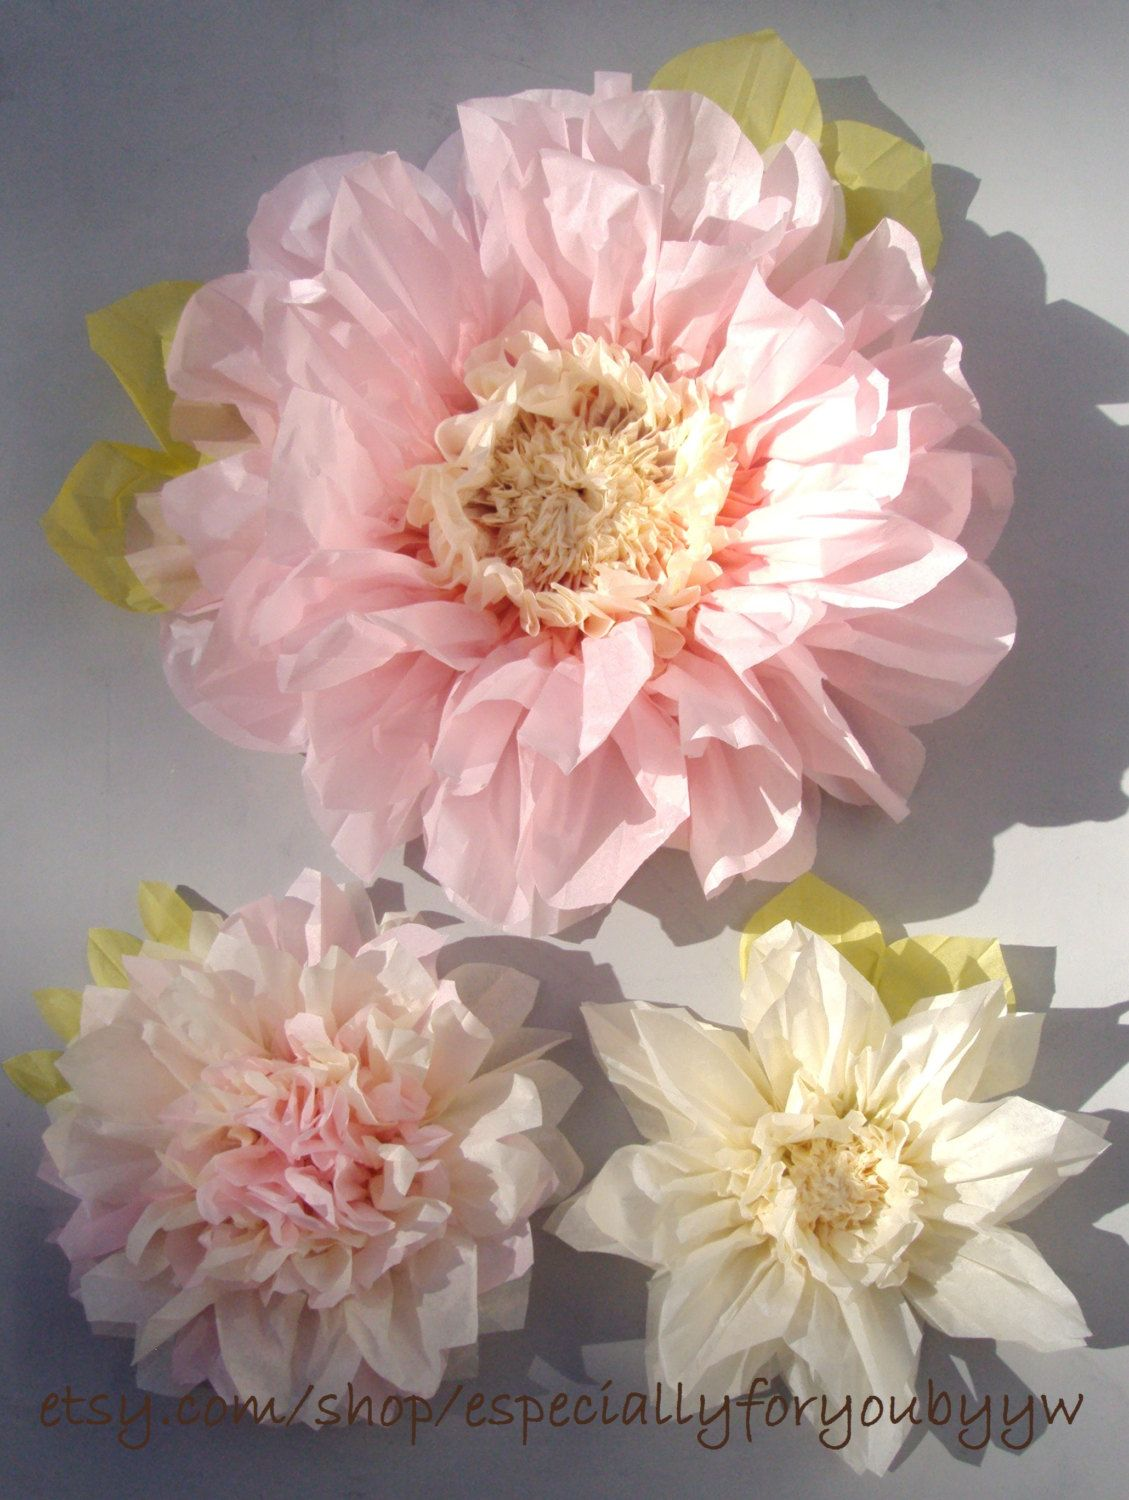 Set Of 3 Giant Paper Flowers Light Pink By Especiallyforyoubyyw